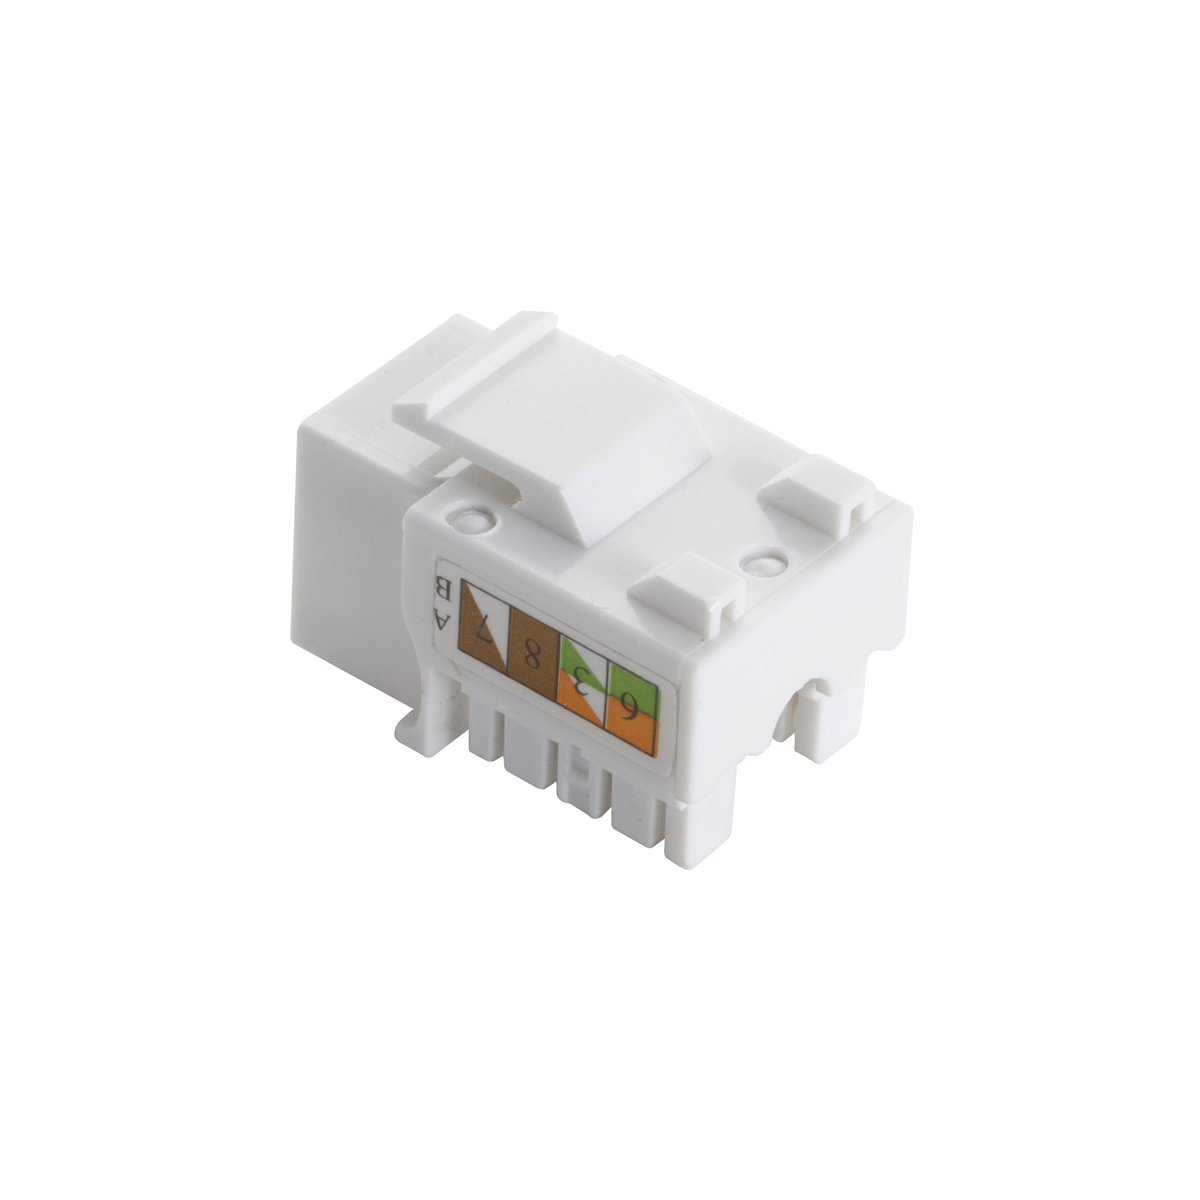 Teninyu 5 Pack Rj45 Keystone Jack Module Connector 568a Wiring Diagram Get Free Image About 568b Adapter Compatible Cat 6 5e Connectorwhite Computers Accessories